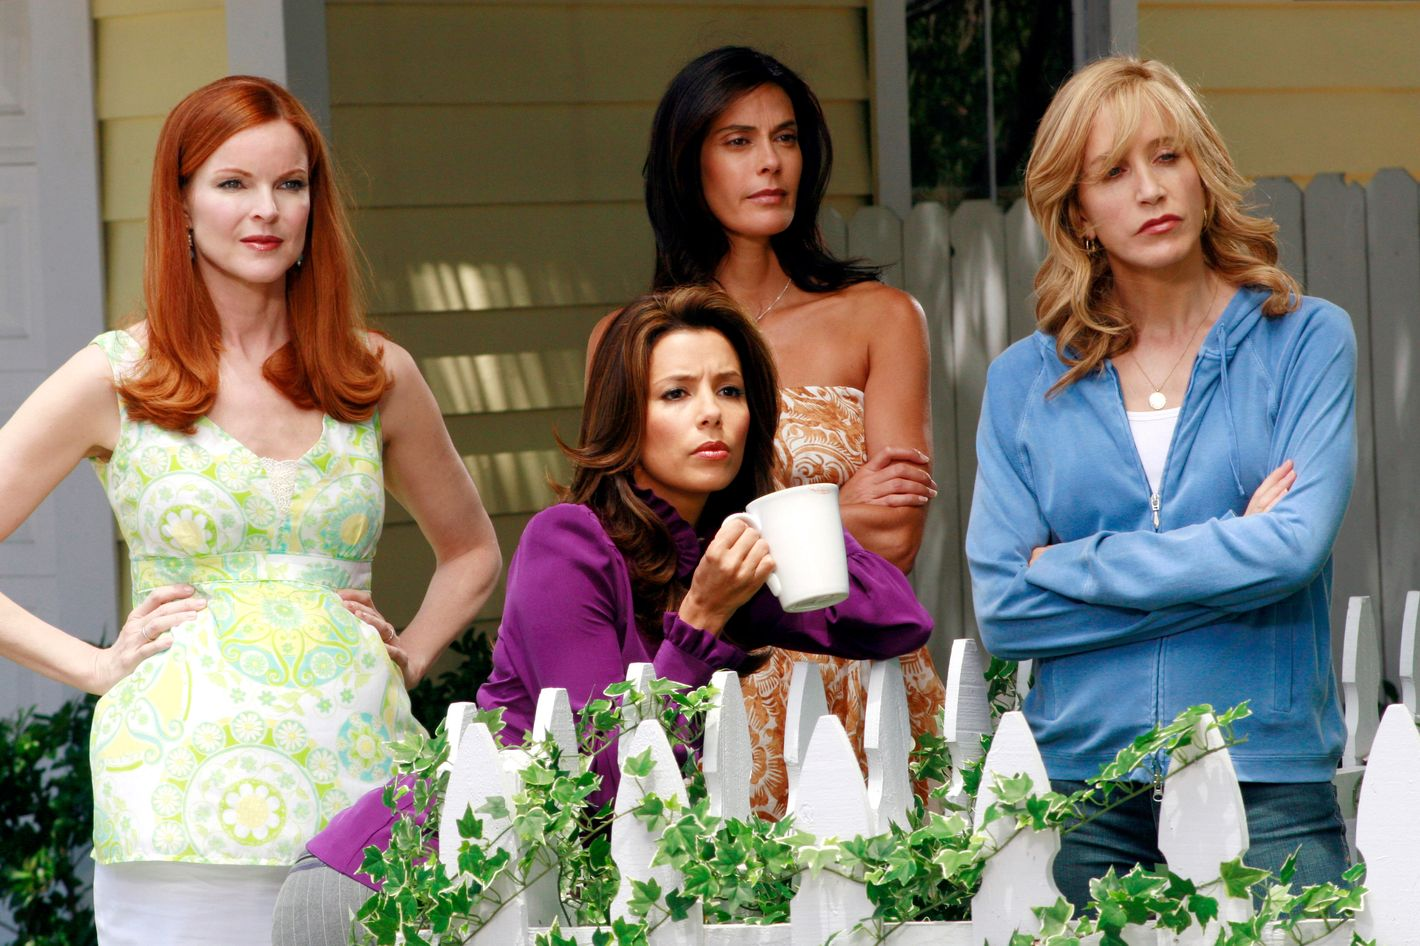 The TV pilot of Desperate Housewives didn't get air because ABC was unhappy with the cast